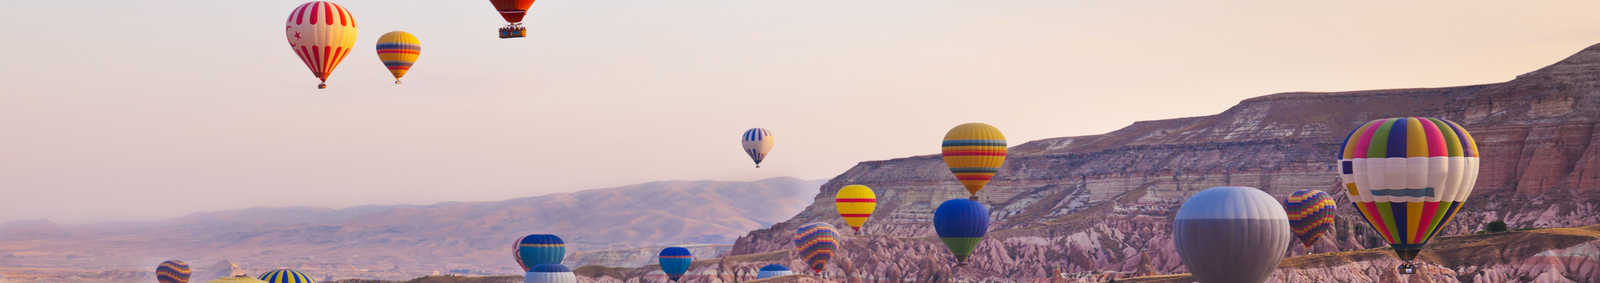 Hot air balloon flying over rock landscape at Cappadocia, Turkey